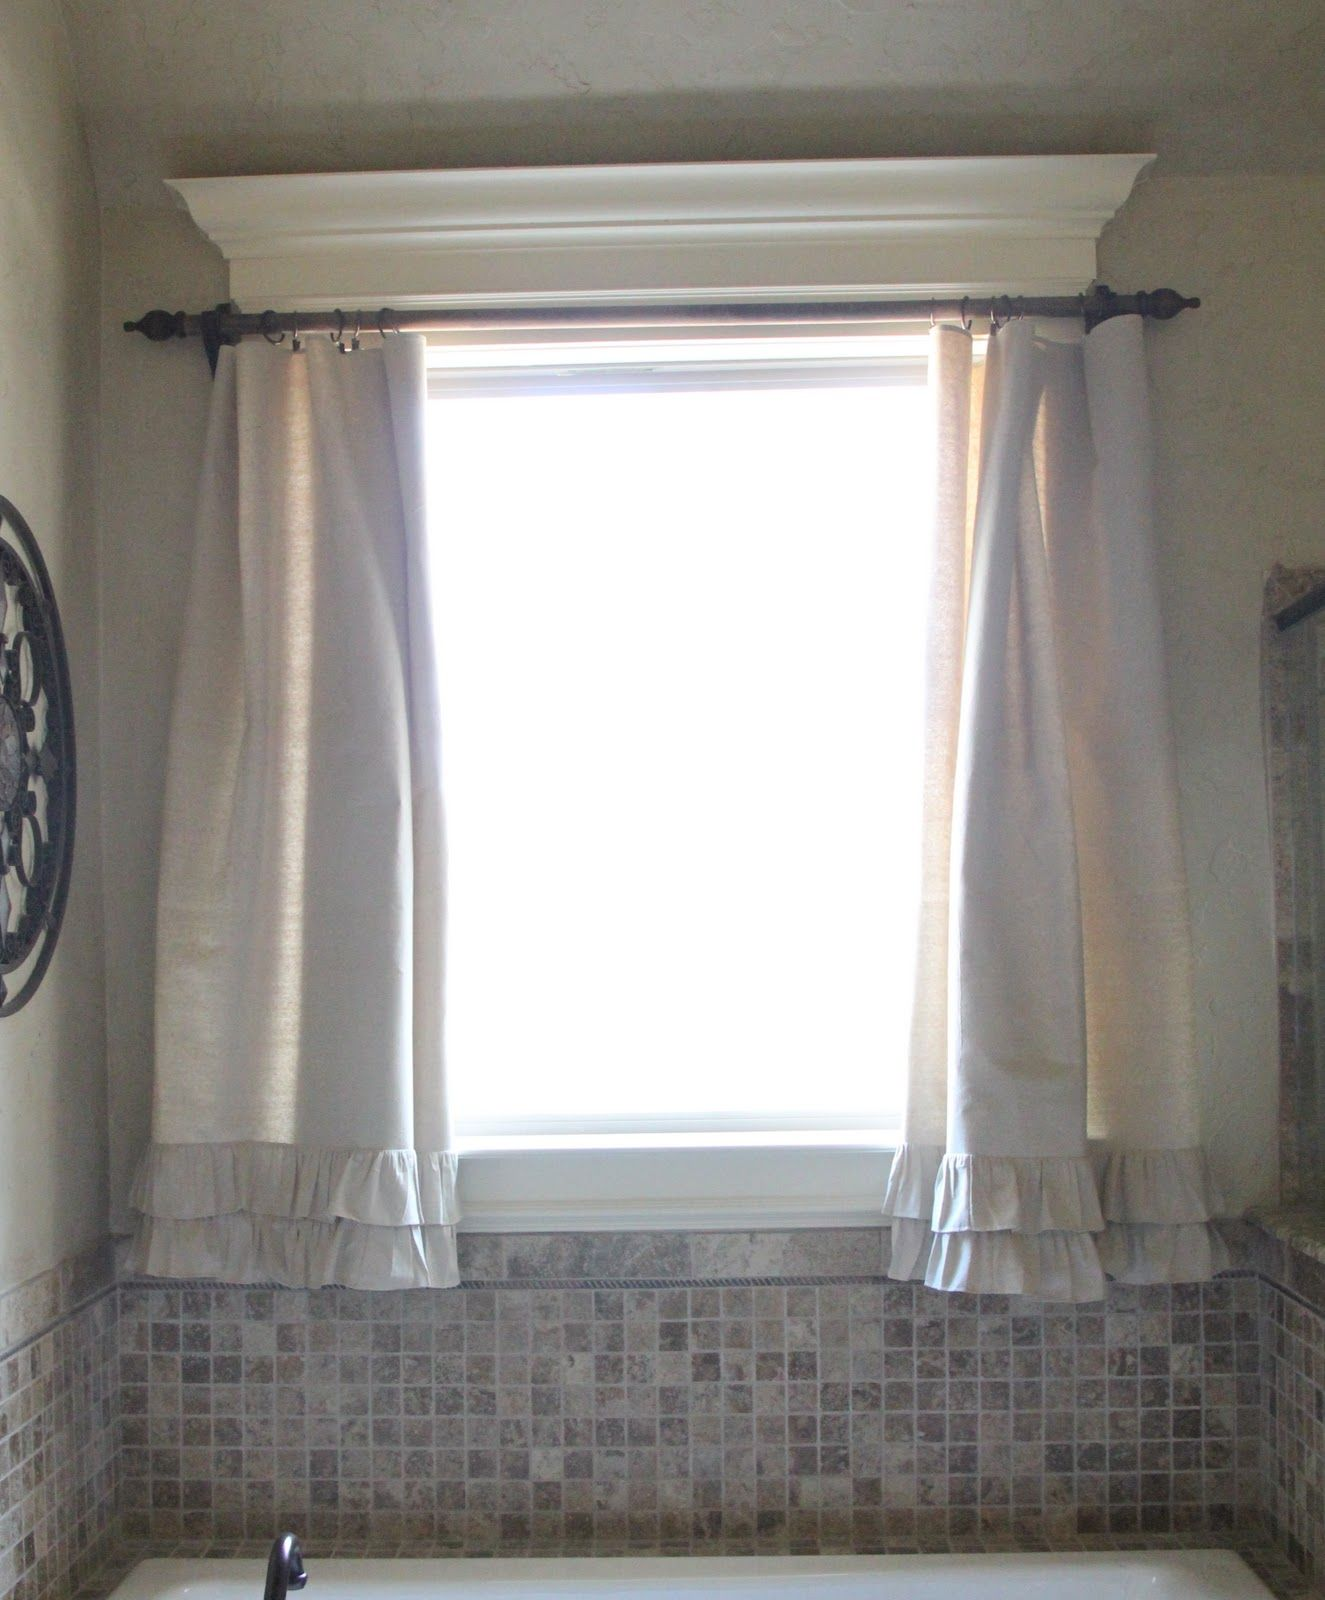 Curtains - made with a cheap Drop Cloth  - never would have thought of that!